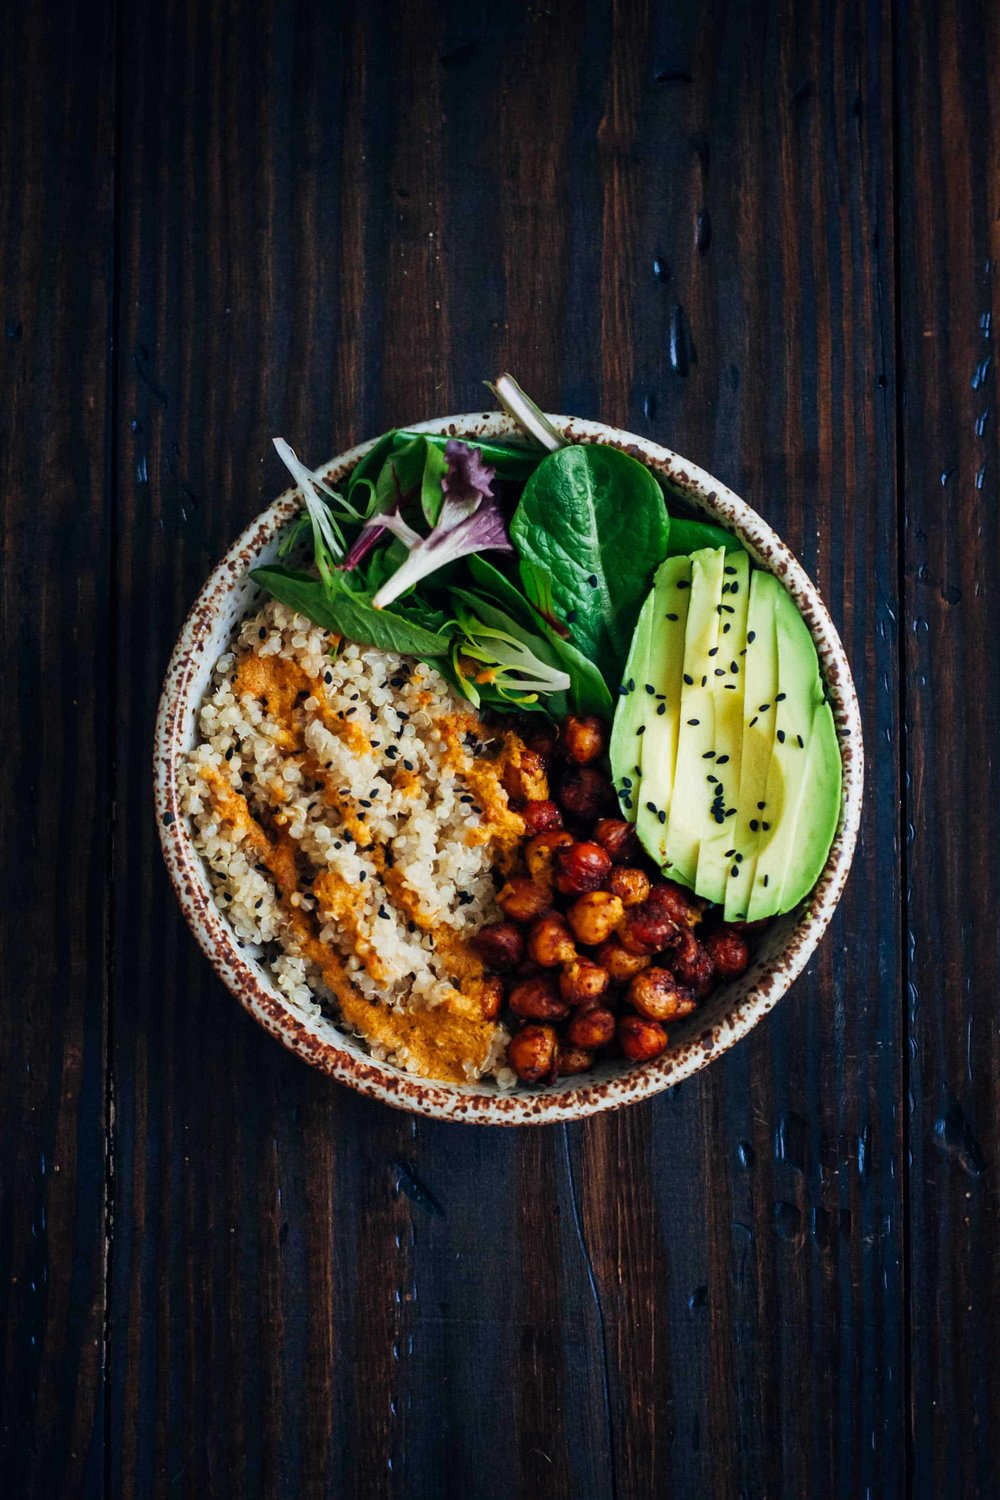 You can find a healthy bowl on menus across the country now, I love them!  They are the perfect way to prepare your balanced meal with protein, fats and carbs.  Try this amazing recipe at home. Post your pictures let me see.      The Vegan Buddha Bowl  This vegan buddha bowl has it all - fluffy quinoa, crispy spiced chickpeas, and mixed greens, topped with a mouthwatering red pepper sauce!   Prep Time 15 minutes  Cook Time 25 minutes  Total Time 40 minutes  Servings 2  Ingredients  Quinoa  1 Cup Quinoa rinsed  2 Cups Water  Chickpeas  1 1/2 Cups Cooked Chickpeas  Drizzle Olive Oil or other neutral oil  1/2 Tsp Salt  1/2 Tsp Smoked Paprika  1 Tsp Chili Powder  1/8 Tsp Turmeric  1/2 Tsp Oregano  Red Pepper Sauce  1 Red Bell Pepper ribs and seeds removed  2 Tbs Olive Oil or other neutral oil  Juice from 1/2 Lemon or more to taste  1/2 Tsp Pepper  1/2 Tsp Salt  1/2 Tsp Paprika  1/4 Cup Fresh Cilantro  Everything Else  Mixed Greens  An Avocado  Sesame Seeds for Garnish  Instructions  Start by cooking the quinoa. Bring 2 cups water to a boil, then add quinoa. Simmer for about 15 minutes until all water is absorbed. When done, remove from heat and keep covered for about 10 minutes so quinoa can absorb any excess water.  Preheat oven to 425. In a bowl, toss chickpeas, oil, and spices until chickpeas are evenly coated. On a baking sheet lined with parchment paper, bake chickpeas for 15-20 minutes, or until desired doneness is reached. When done, remove from oven and let cool.  To make red pepper dressing, add all dressing ingredients to a blender (not a food processor) and blend on high until smooth. Taste, and adjust seasonings to your preference.  Finally, assemble the Buddha bowls. In two bowls, add quinoa, mixed greens, avocado, and chickpeas. Drizzle everything with red pepper sauce, and sprinkle with sesame seeds.